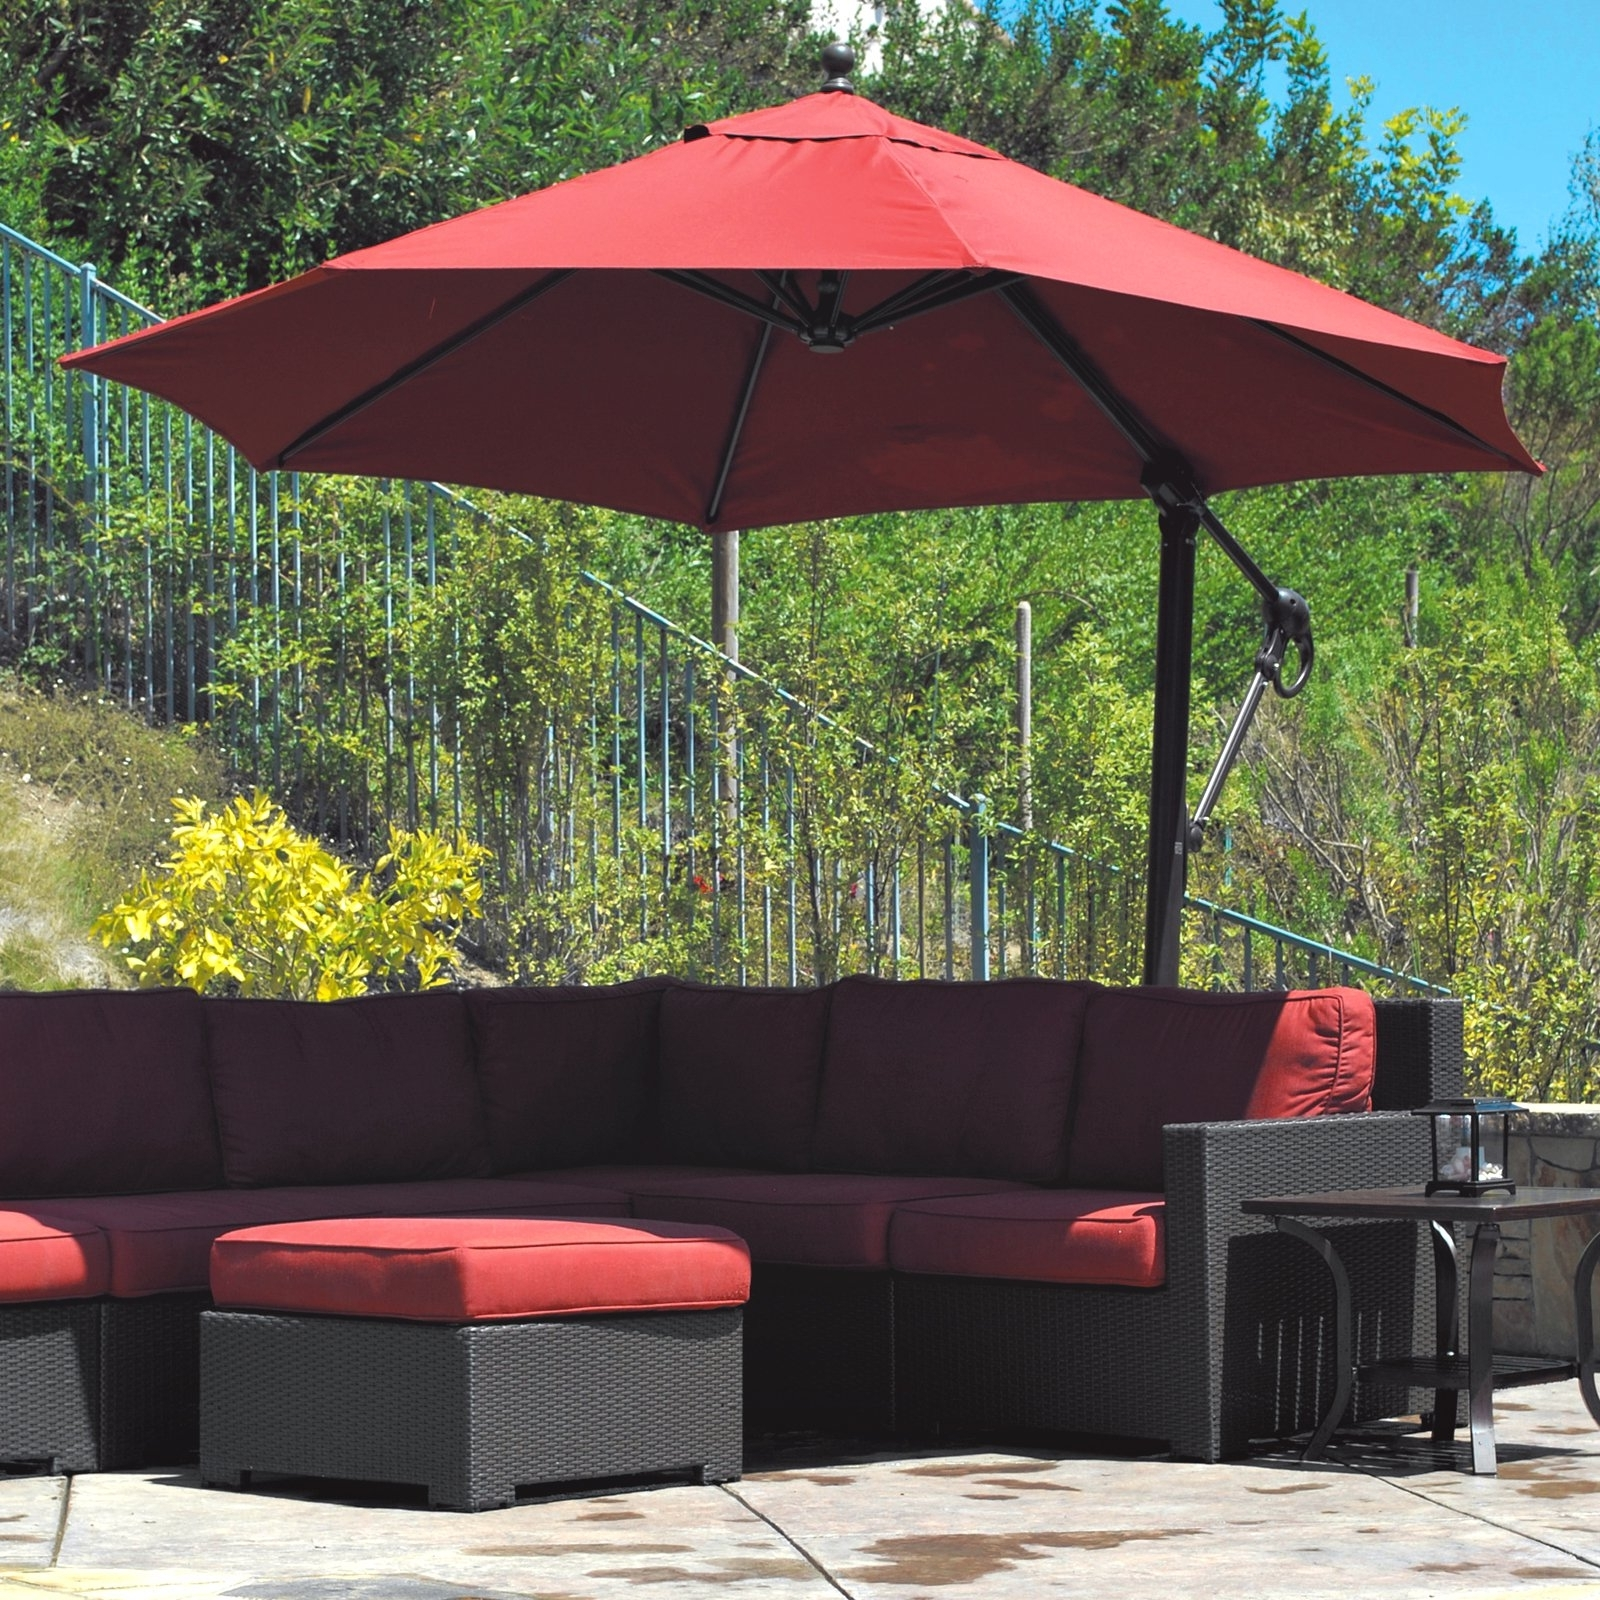 Best Small Patio Umbrella Ideas : Life On The Move – Nice Small Throughout Latest Small Patio Tables With Umbrellas (View 2 of 20)